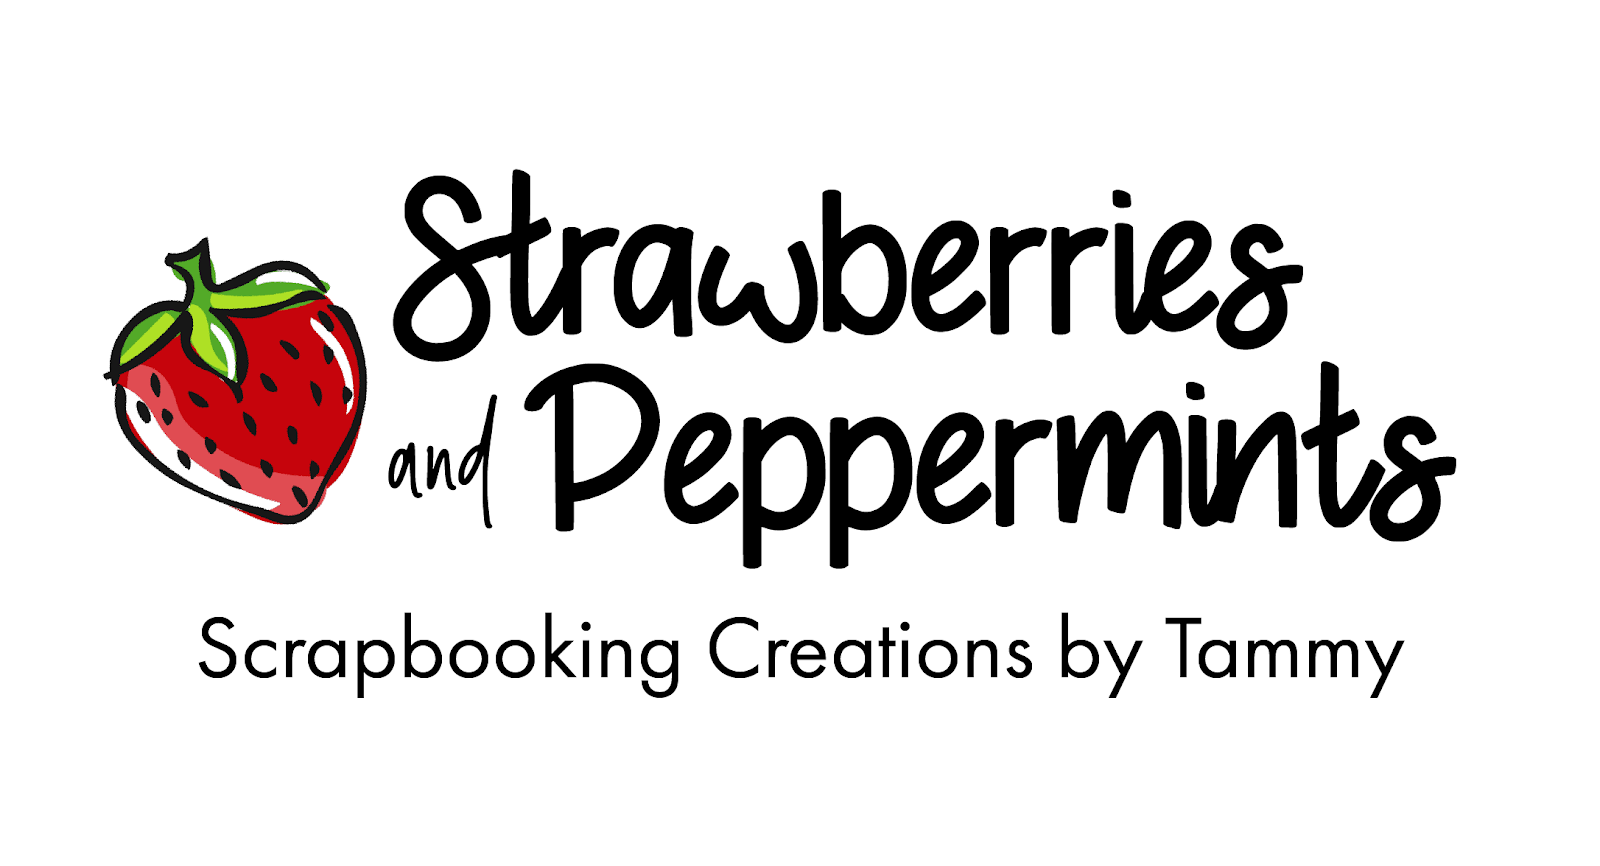 Strawberries & Peppermints